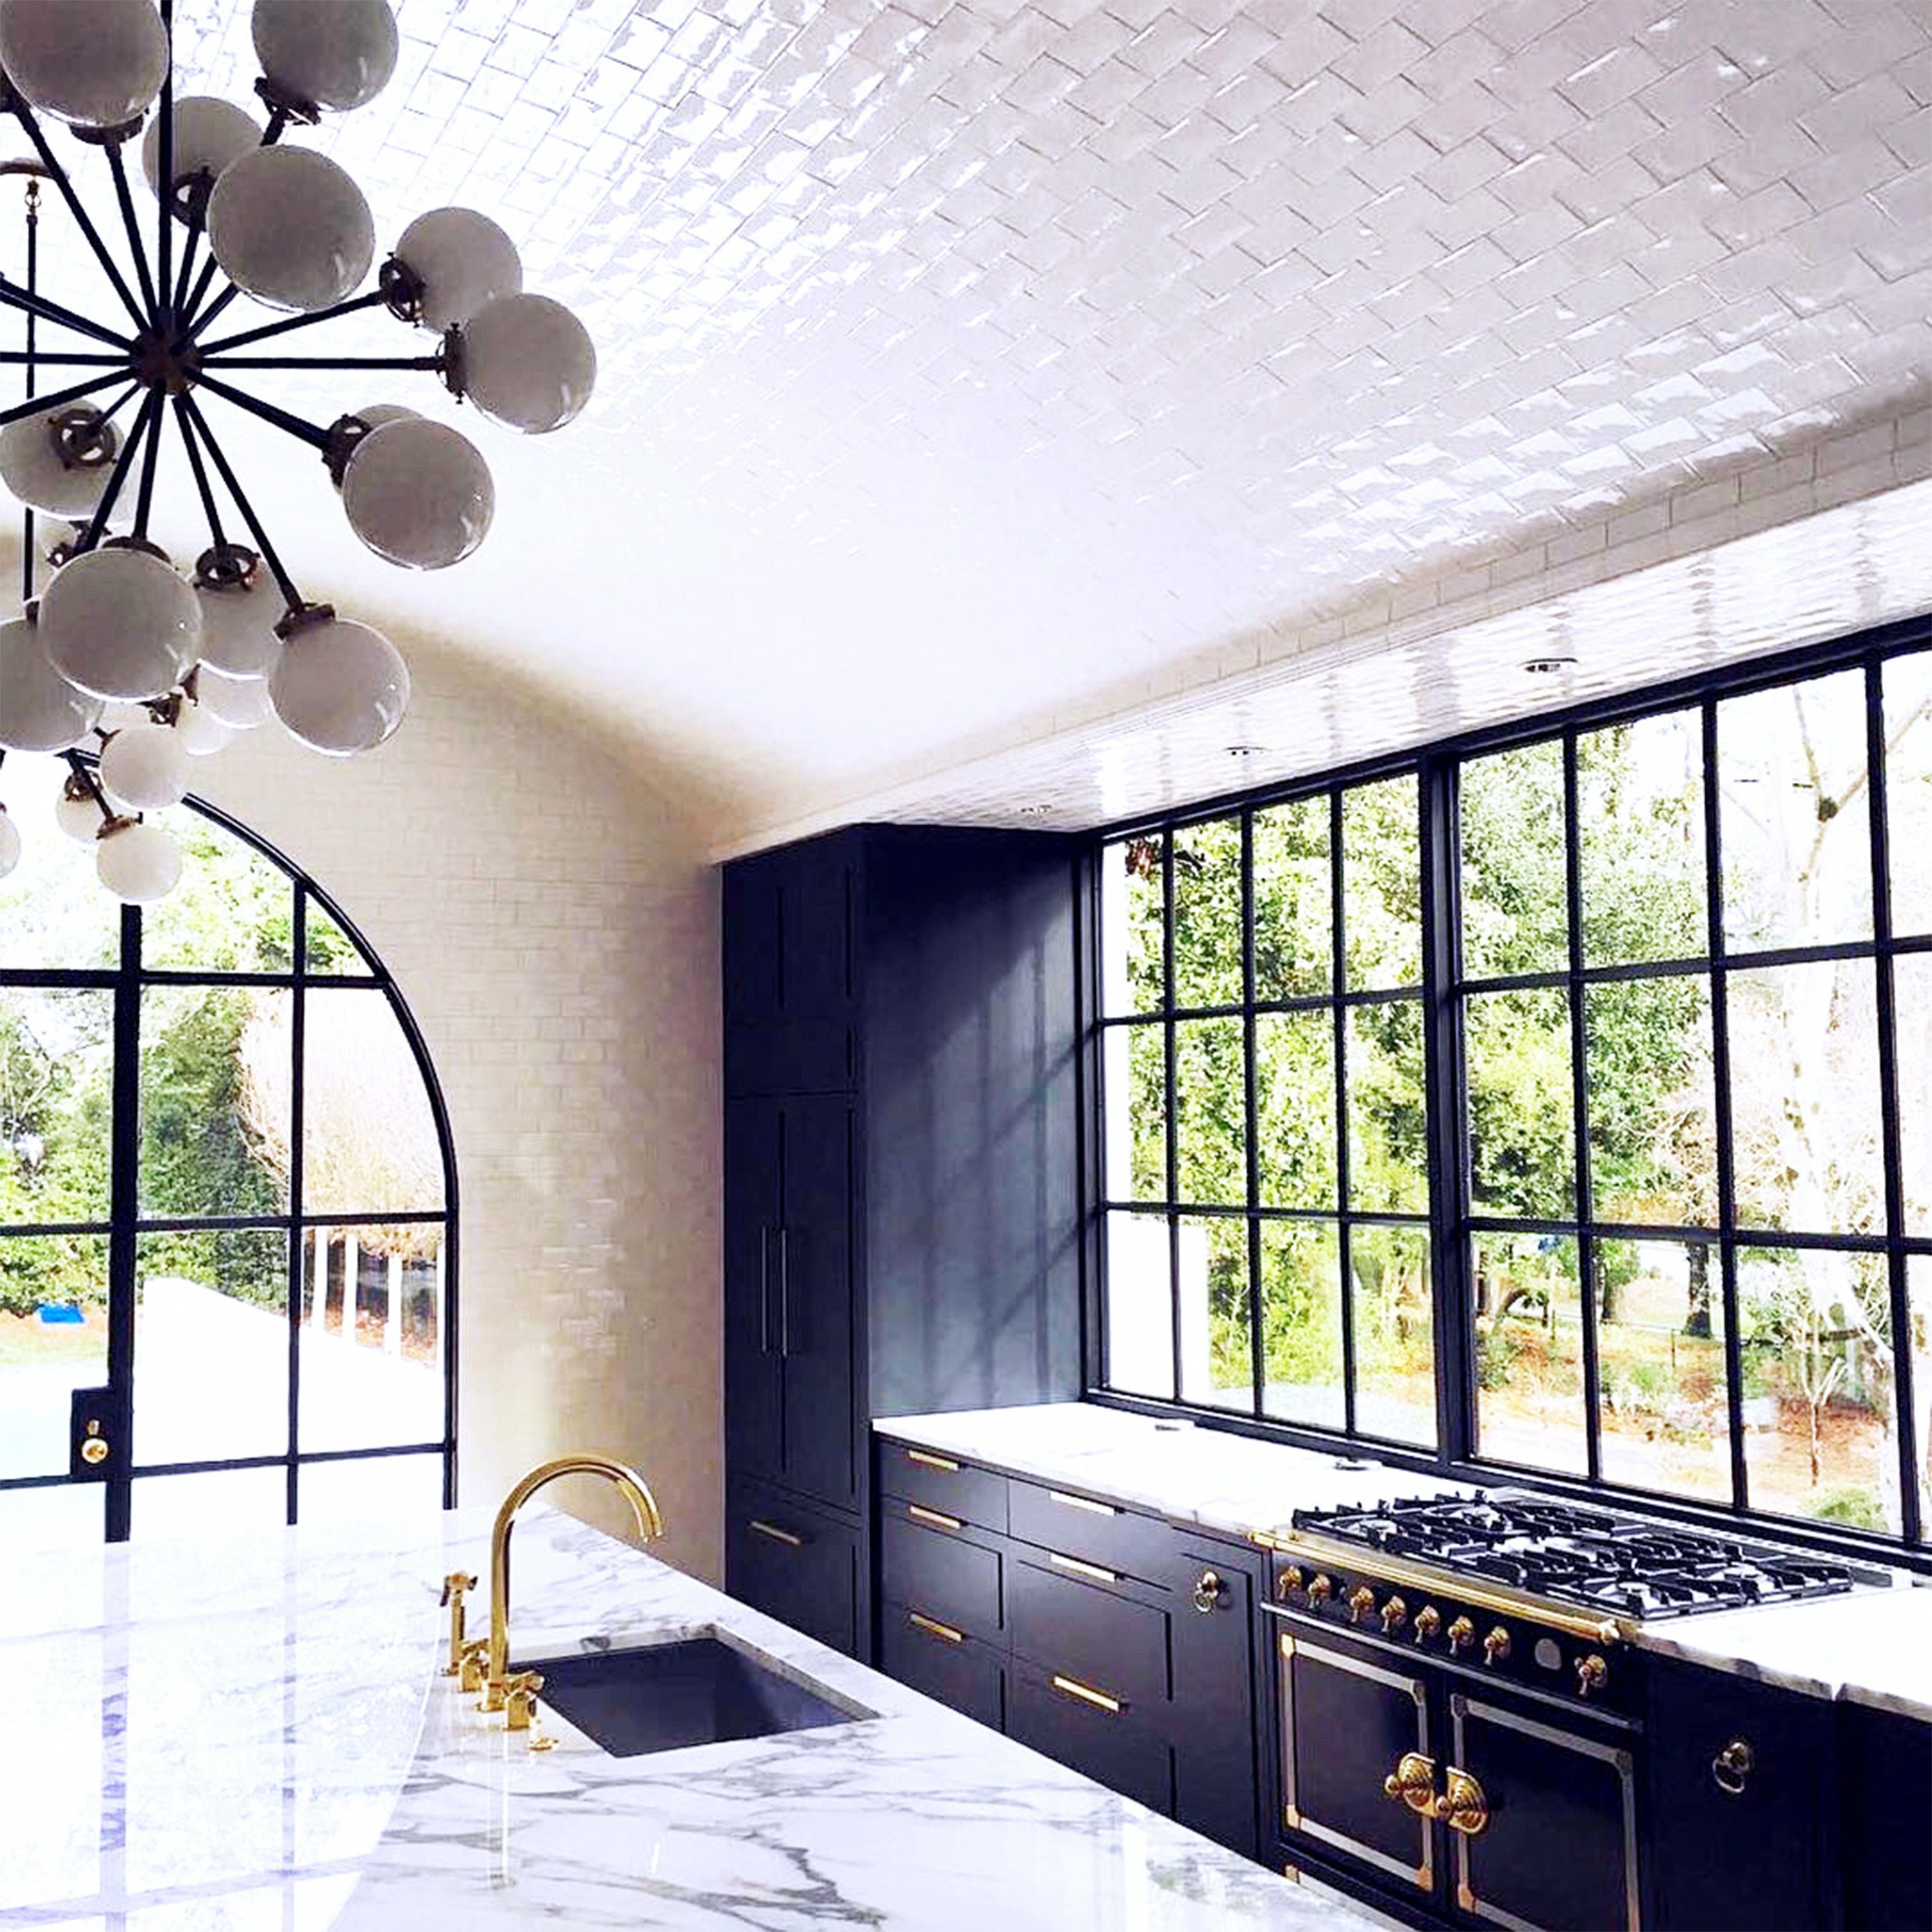 Magnificent white arched tile ceiling kitchen remodel from benecki